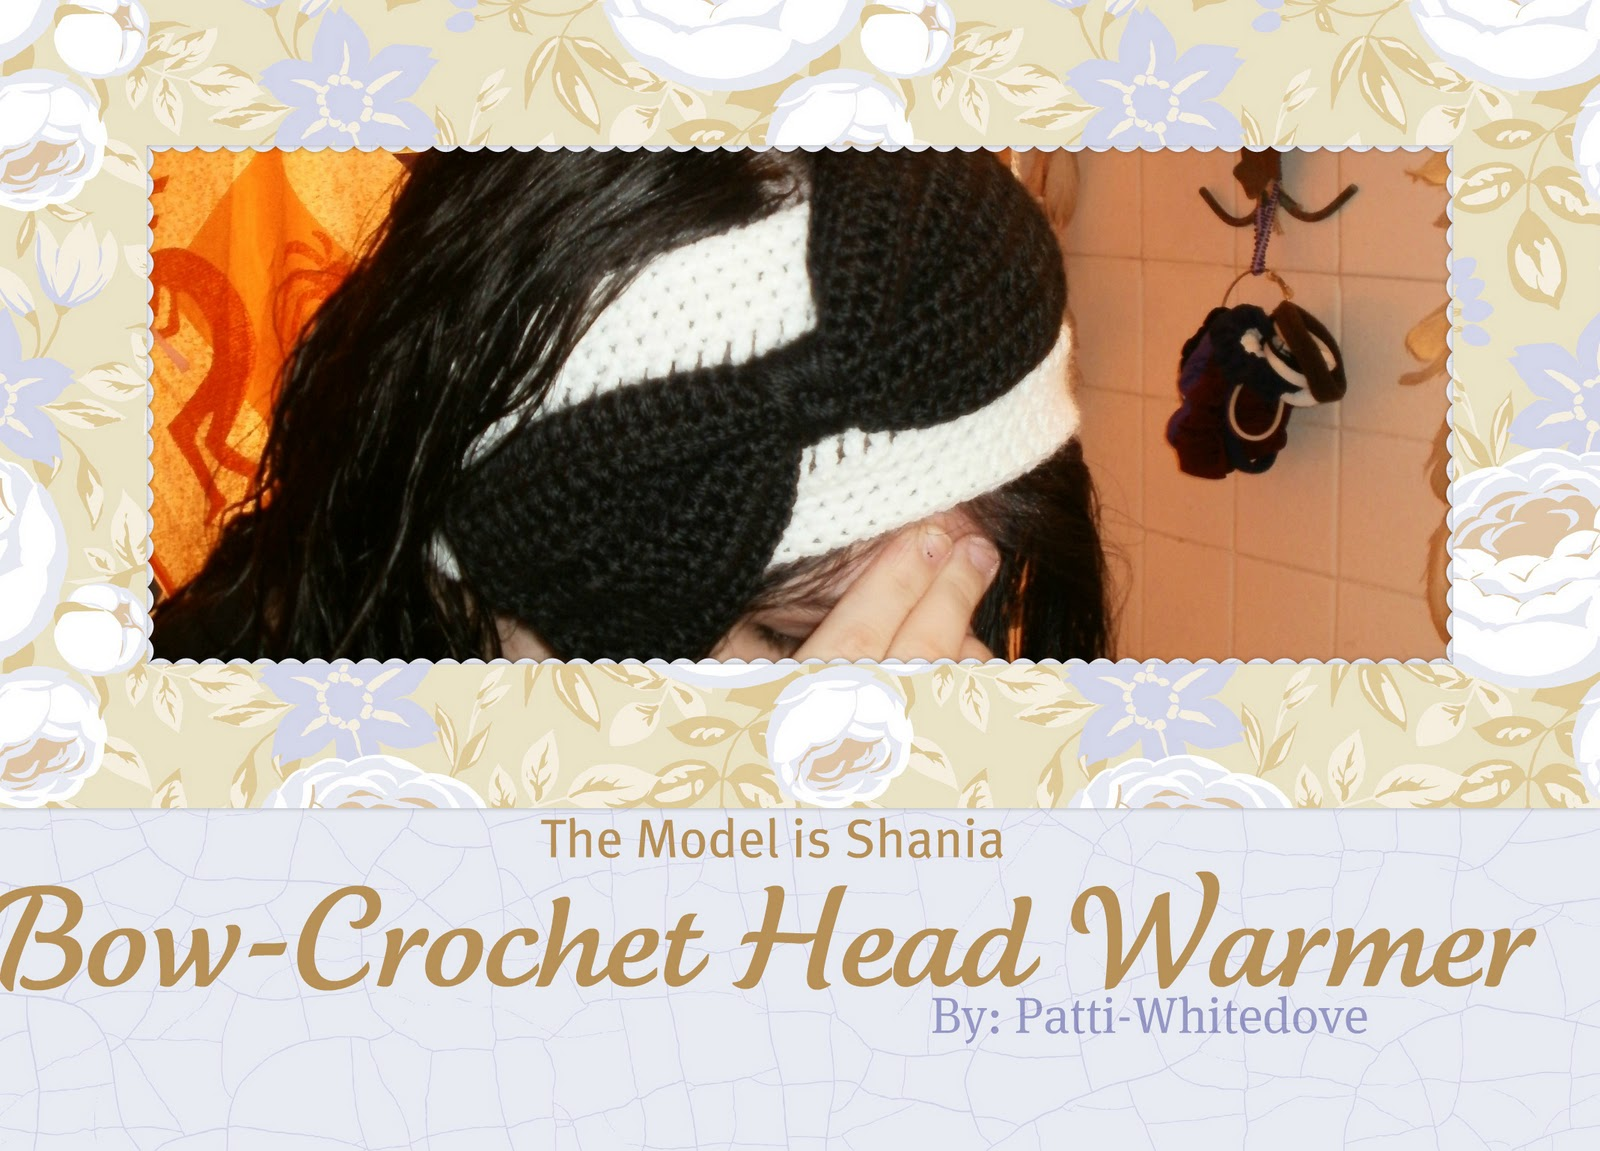 Crochet Patterns Head Warmers : ... Carol, Ruby, Michelle and Darlena: My Crochet Head Warmer Pattern